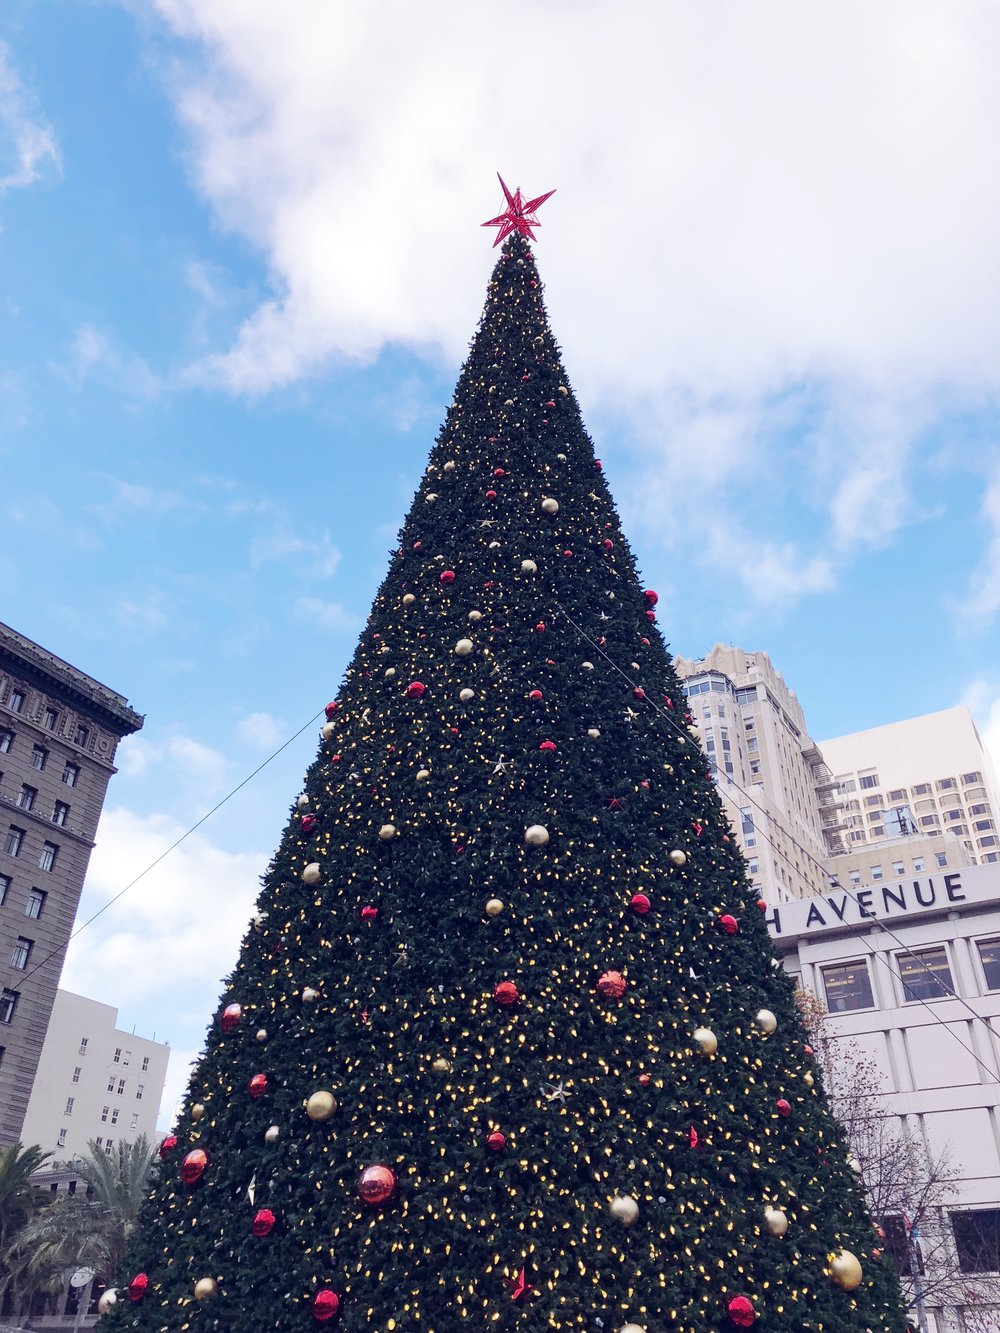 The huge Christmas tree in Union Square.